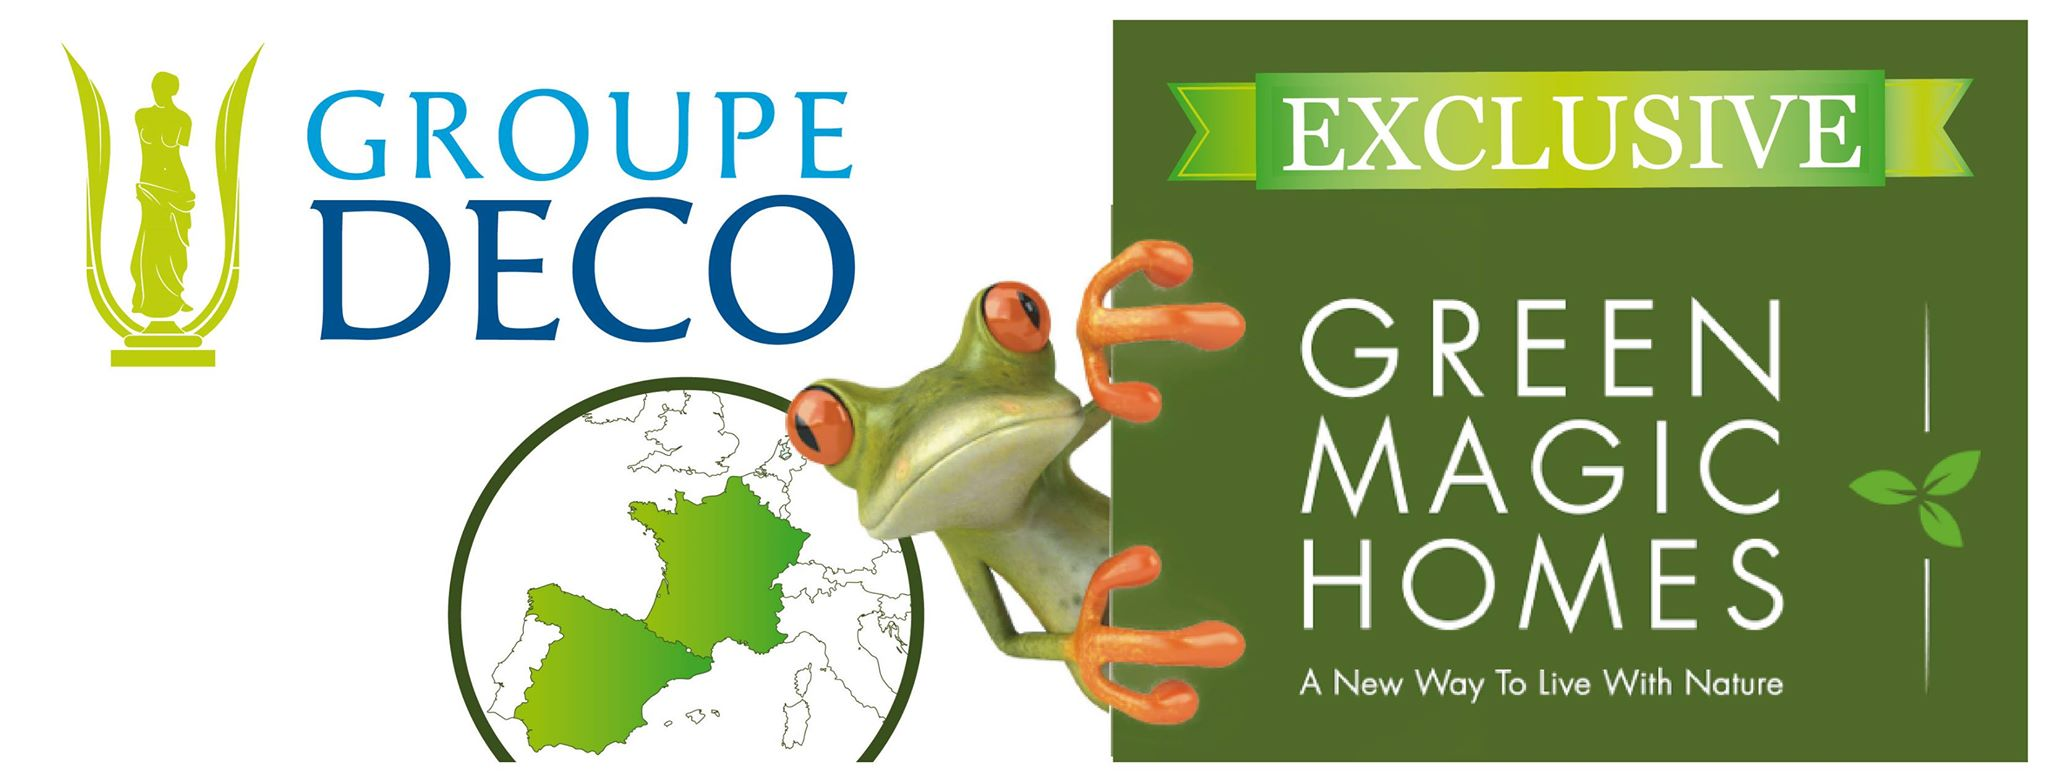 Green Magic Homes et Groupe Deco